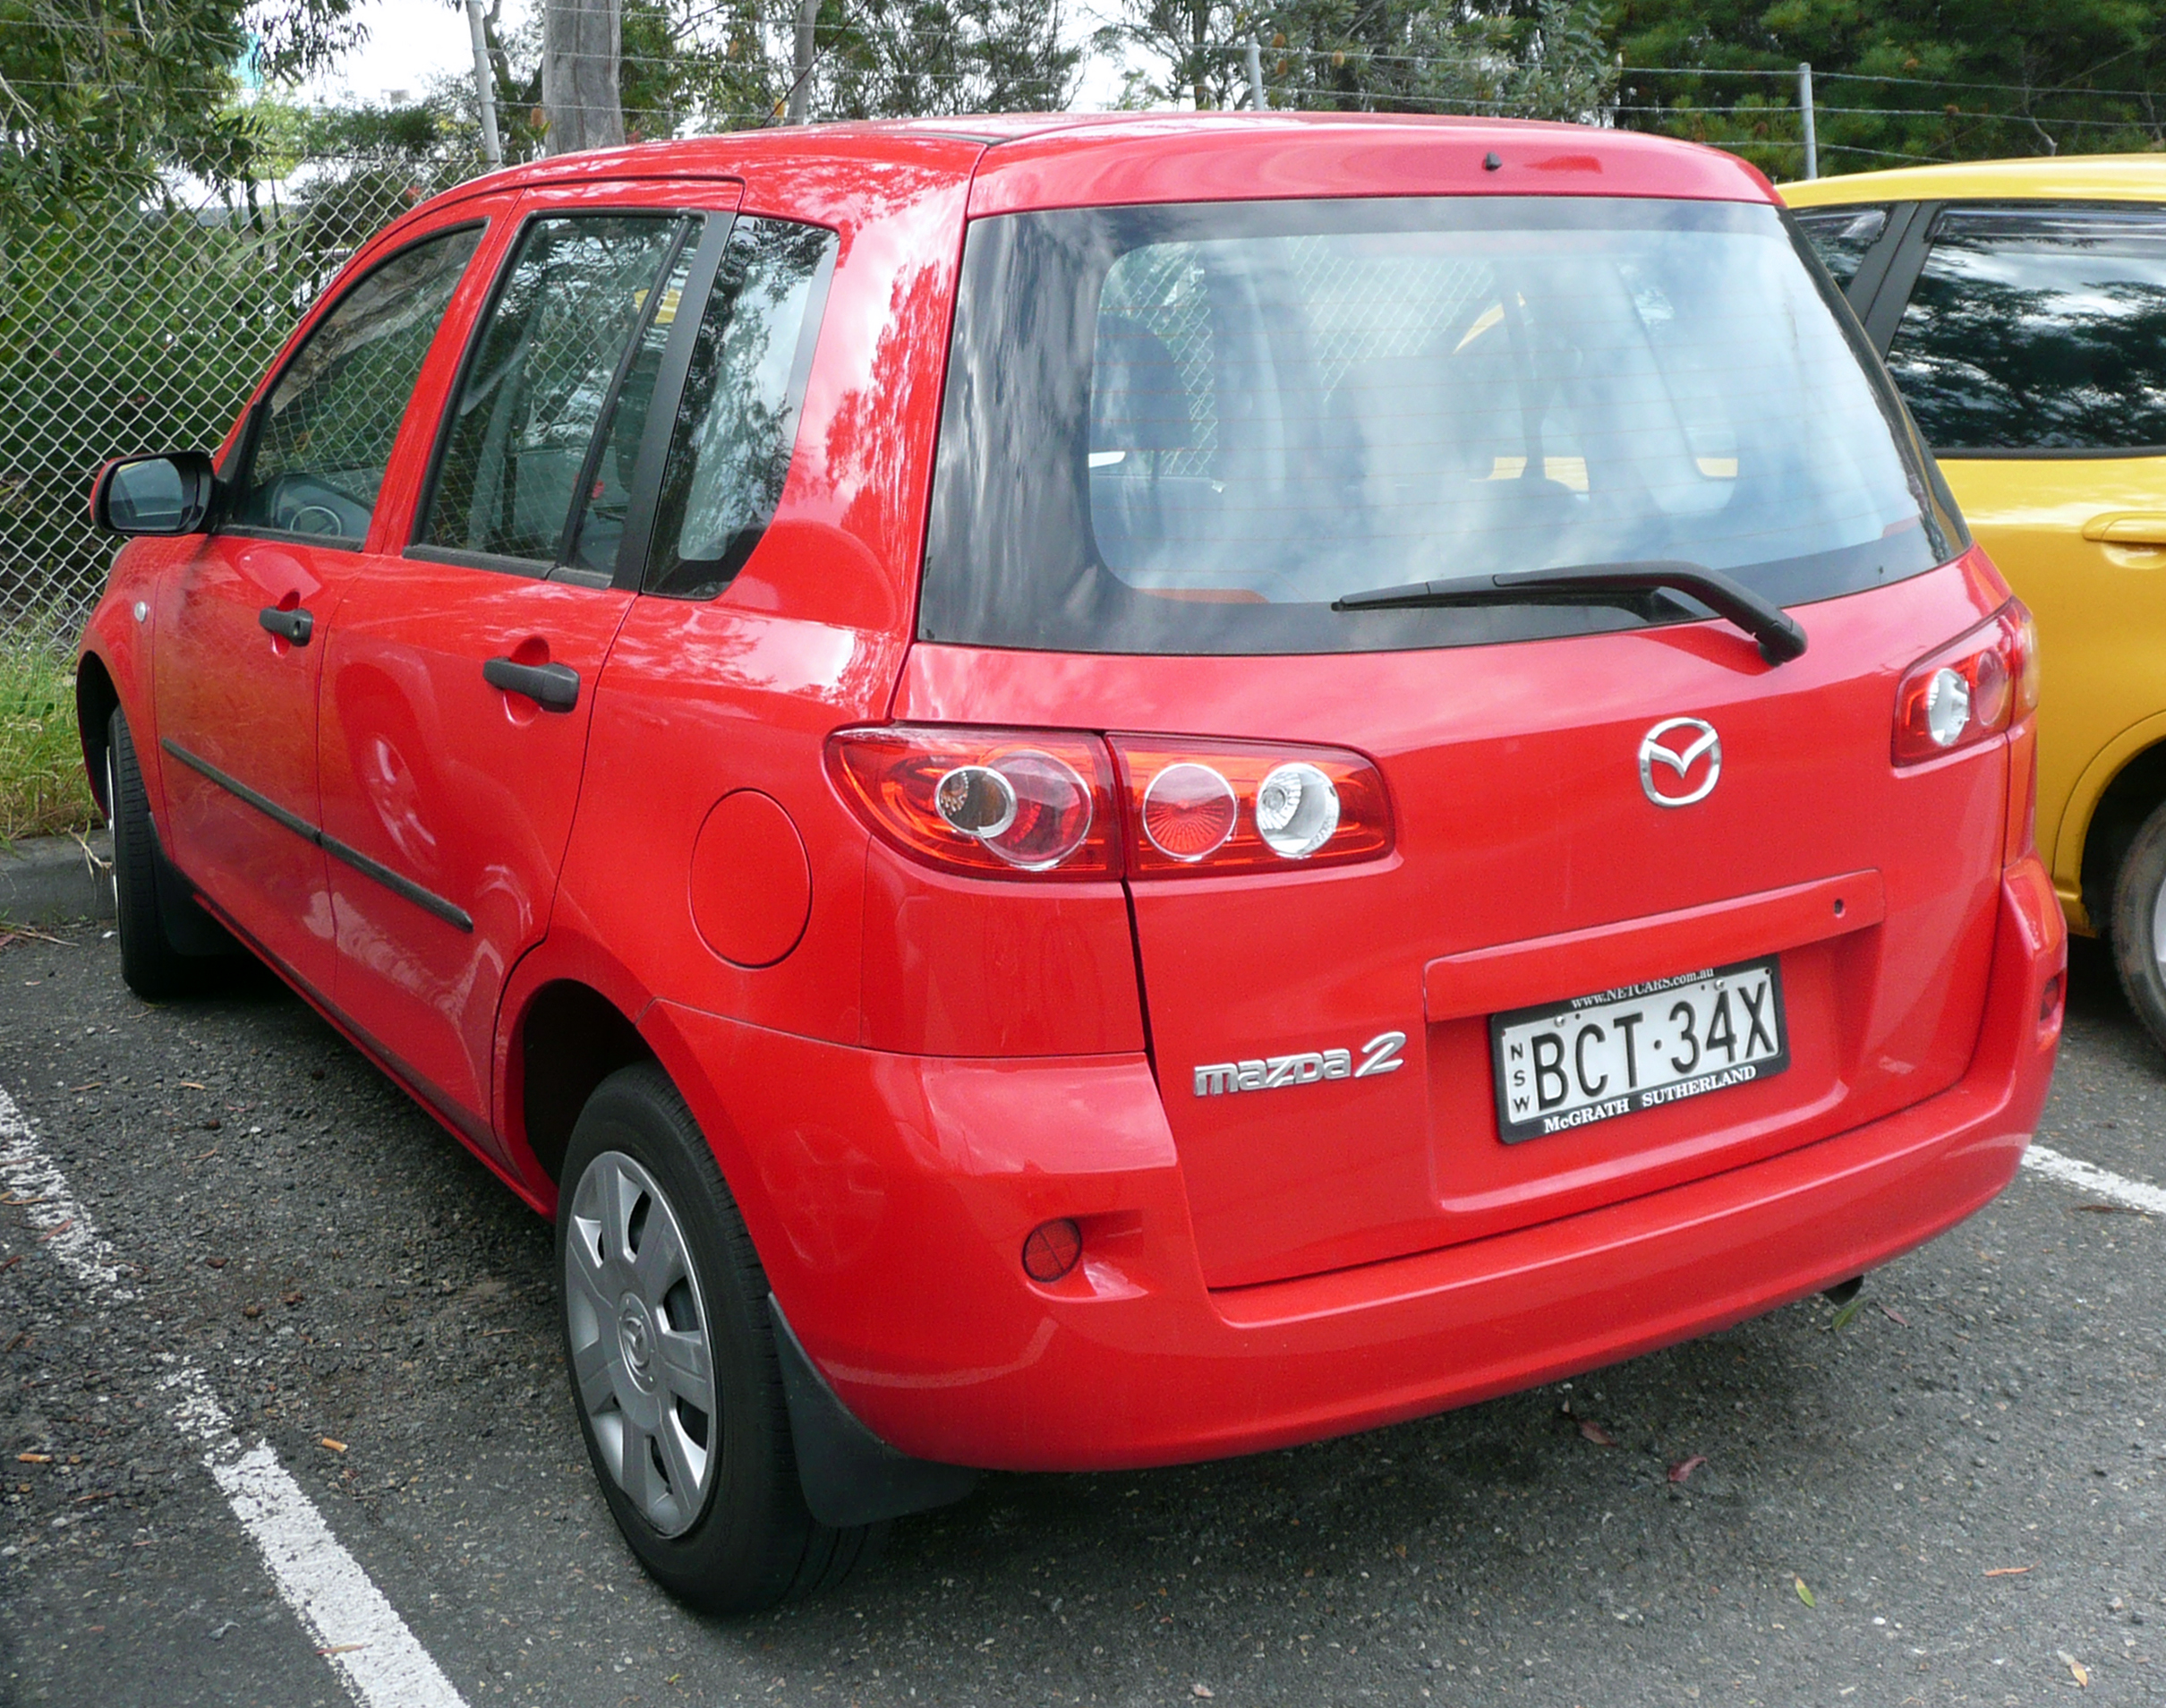 file 2005 2007 mazda 2 dy series 2 neo hatchback wikimedia commons. Black Bedroom Furniture Sets. Home Design Ideas